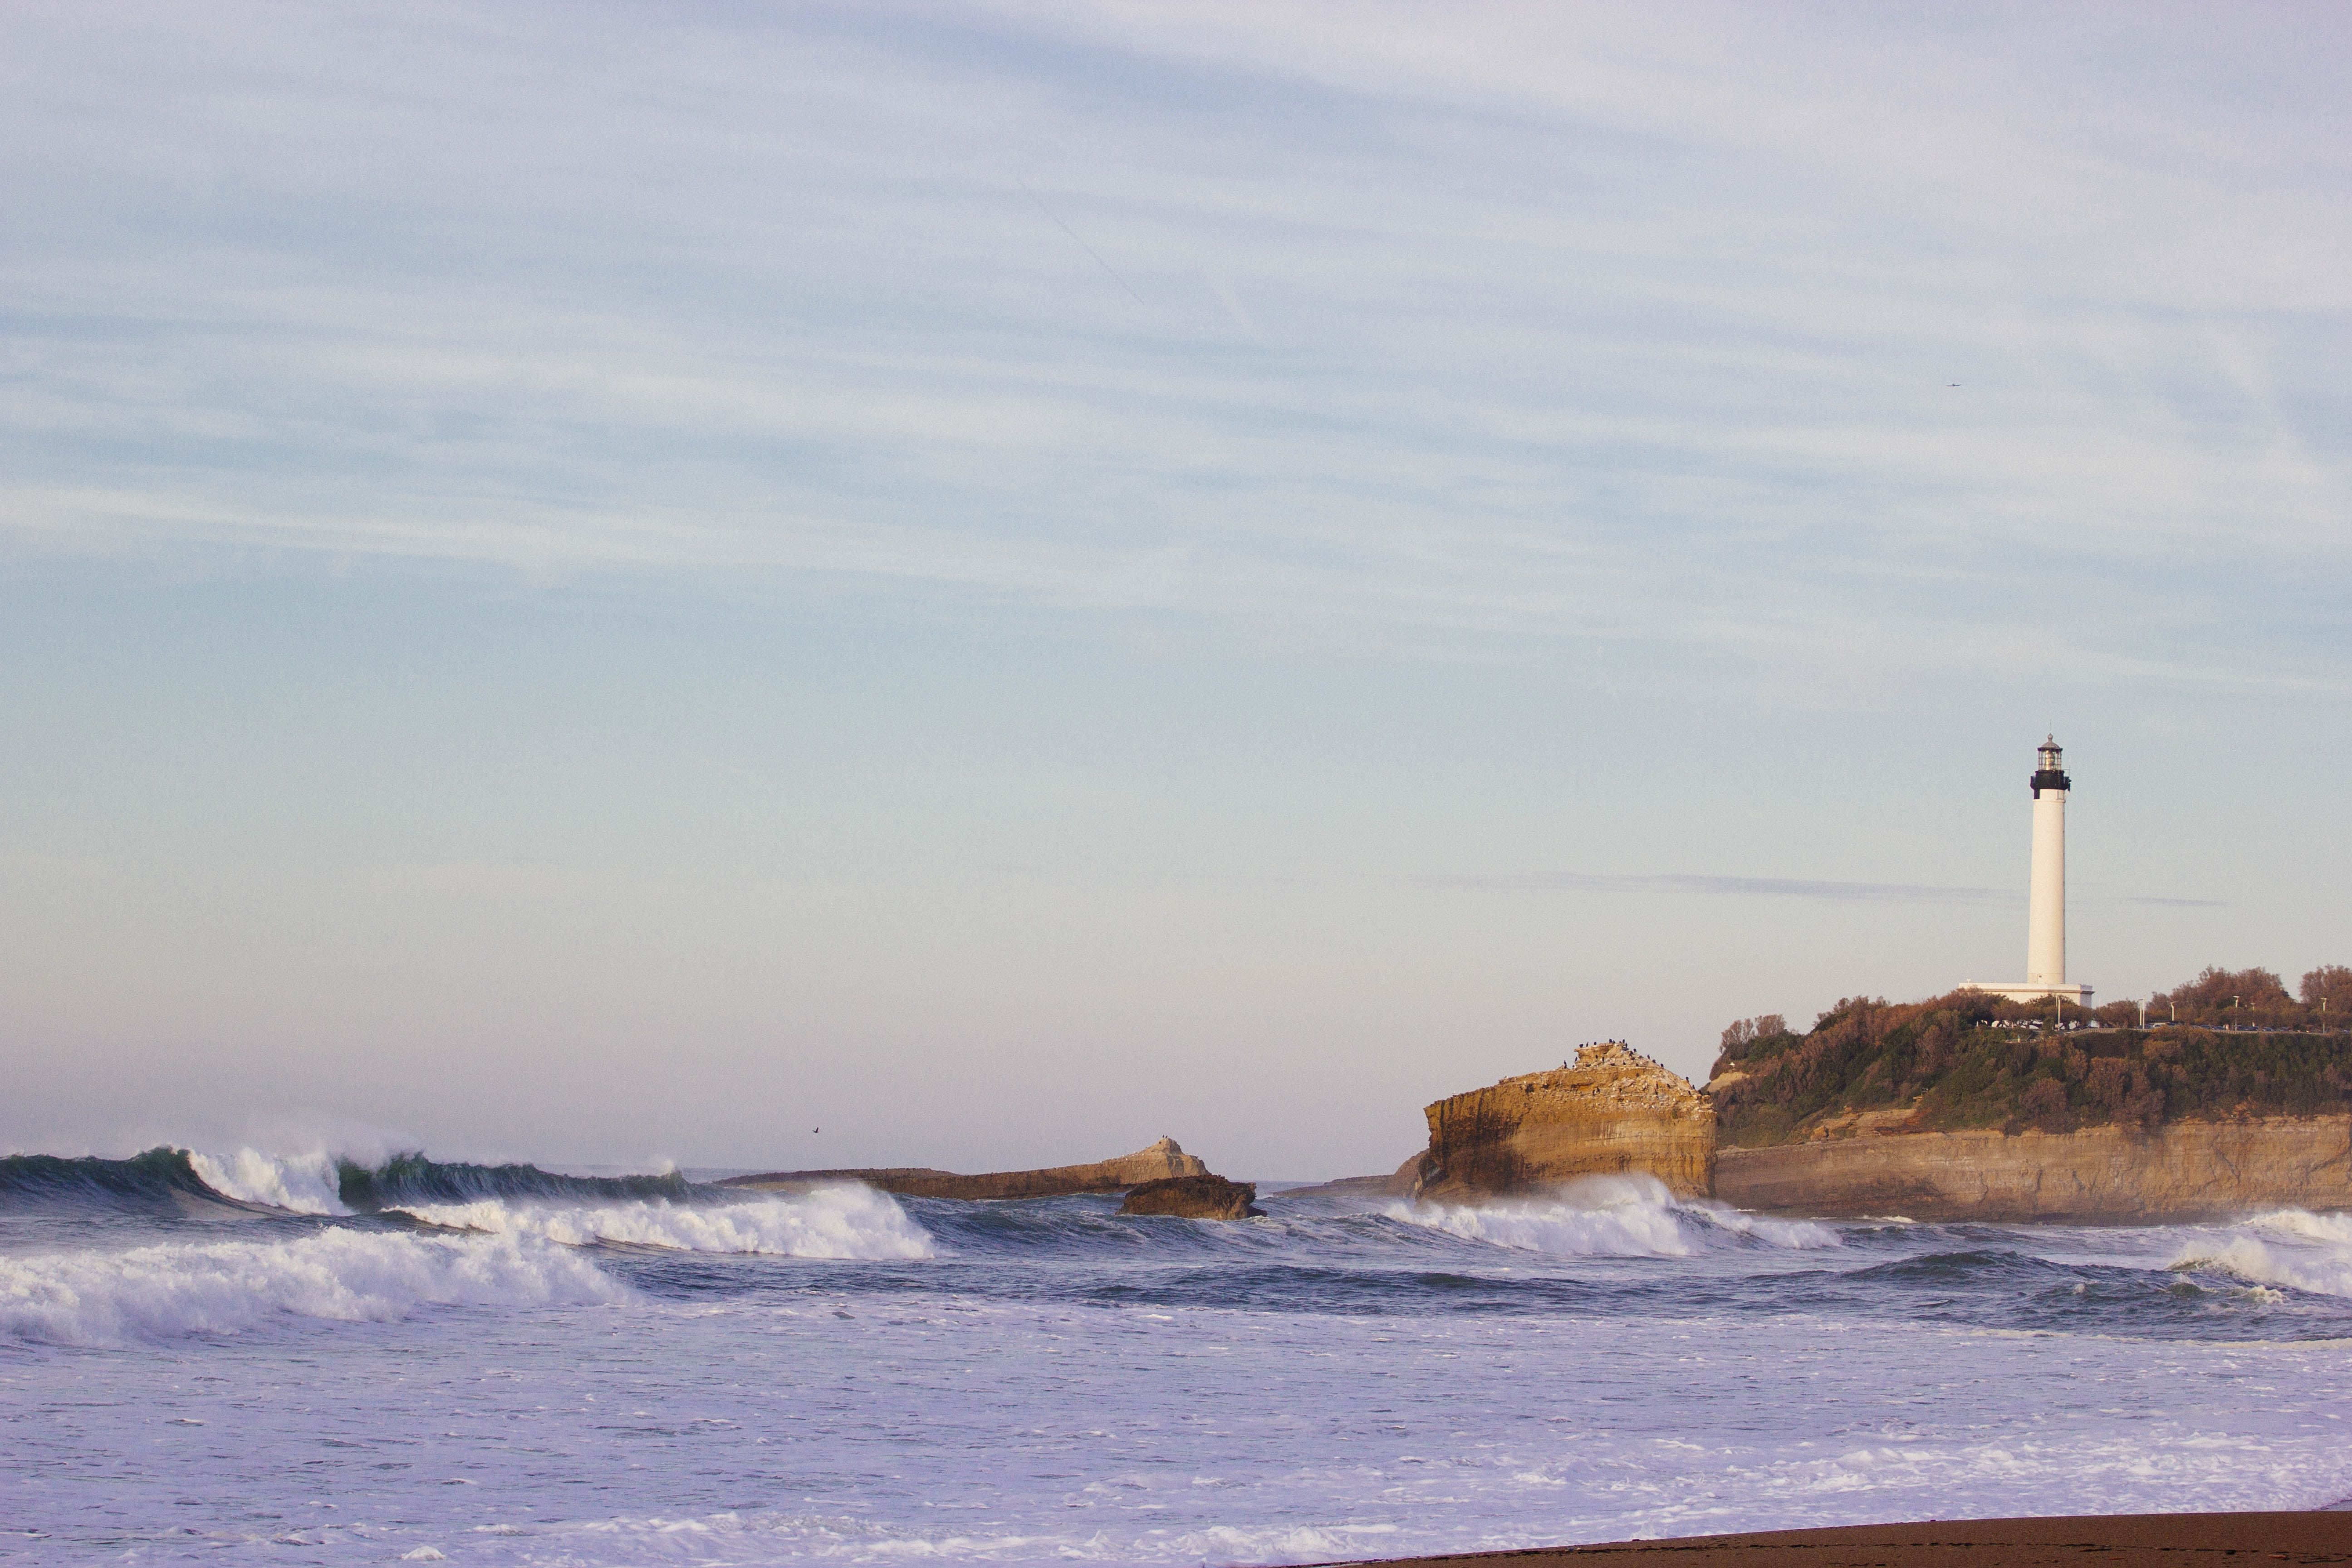 A coastal view of waves lapping the shoreline, with a white lighthouse in the distance at Biarritz